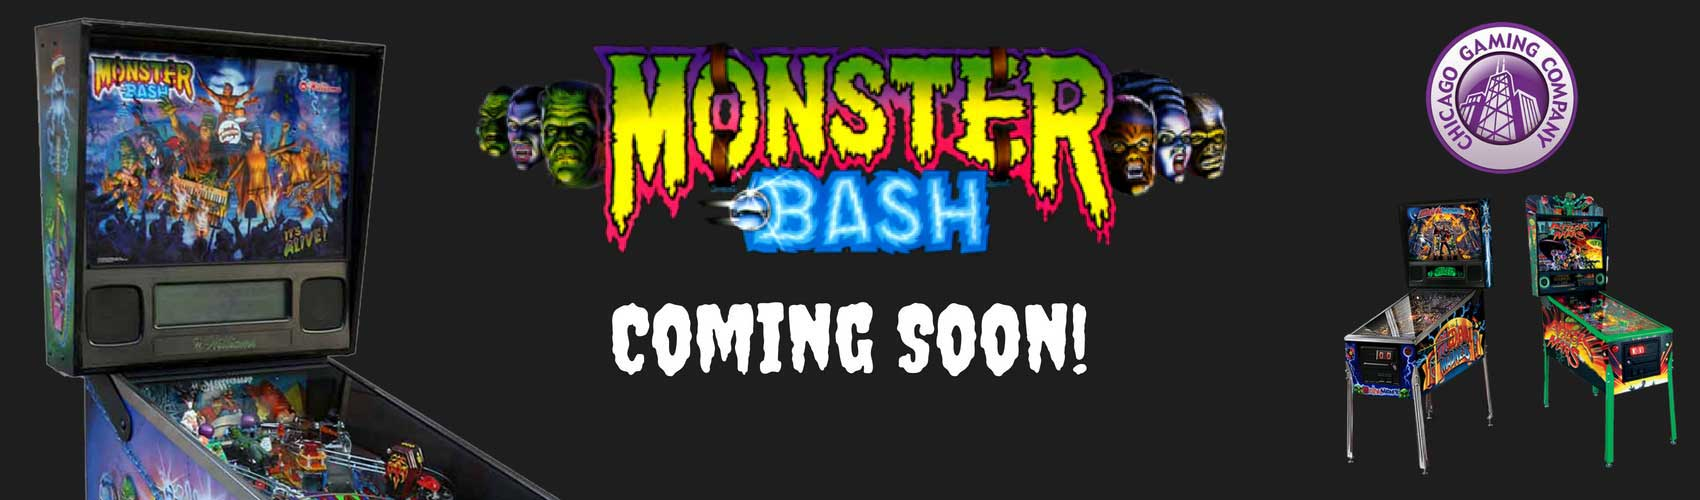 Monster Bash is Coming Soon!